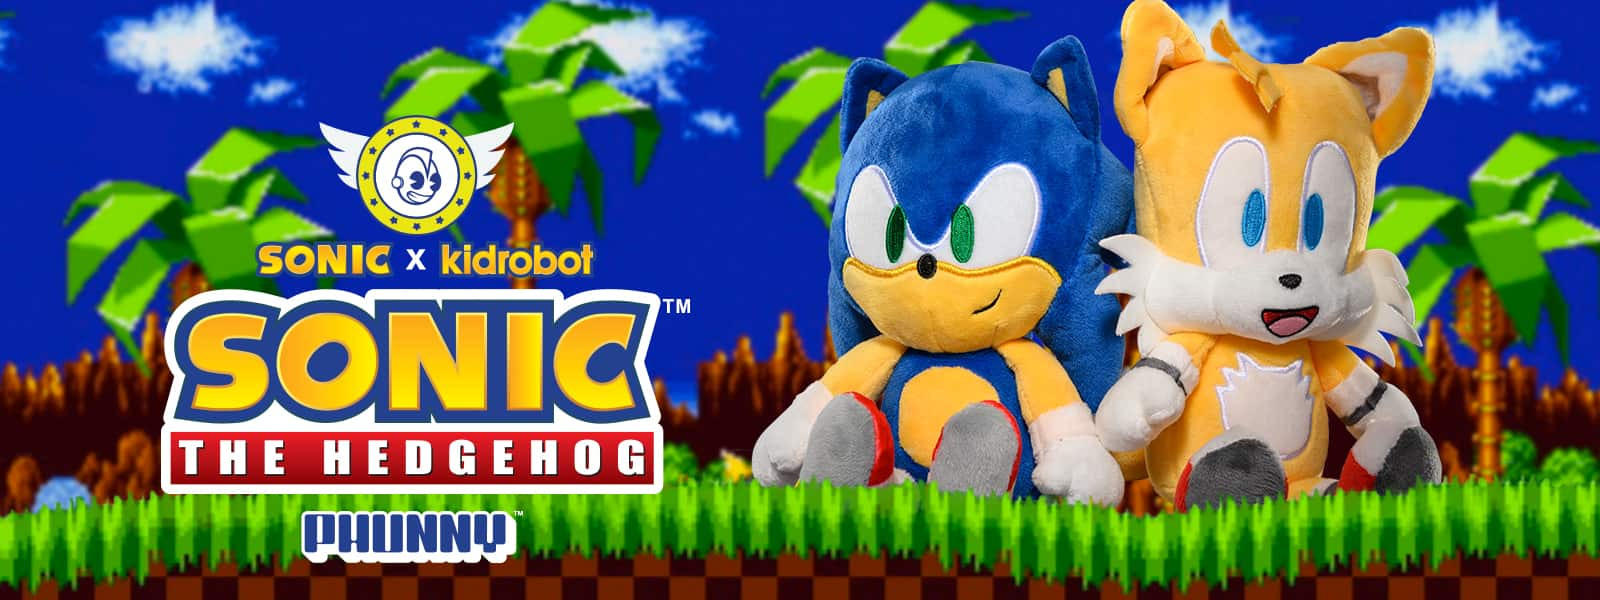 Sonic the Hedgehog Plush by Kidrobot